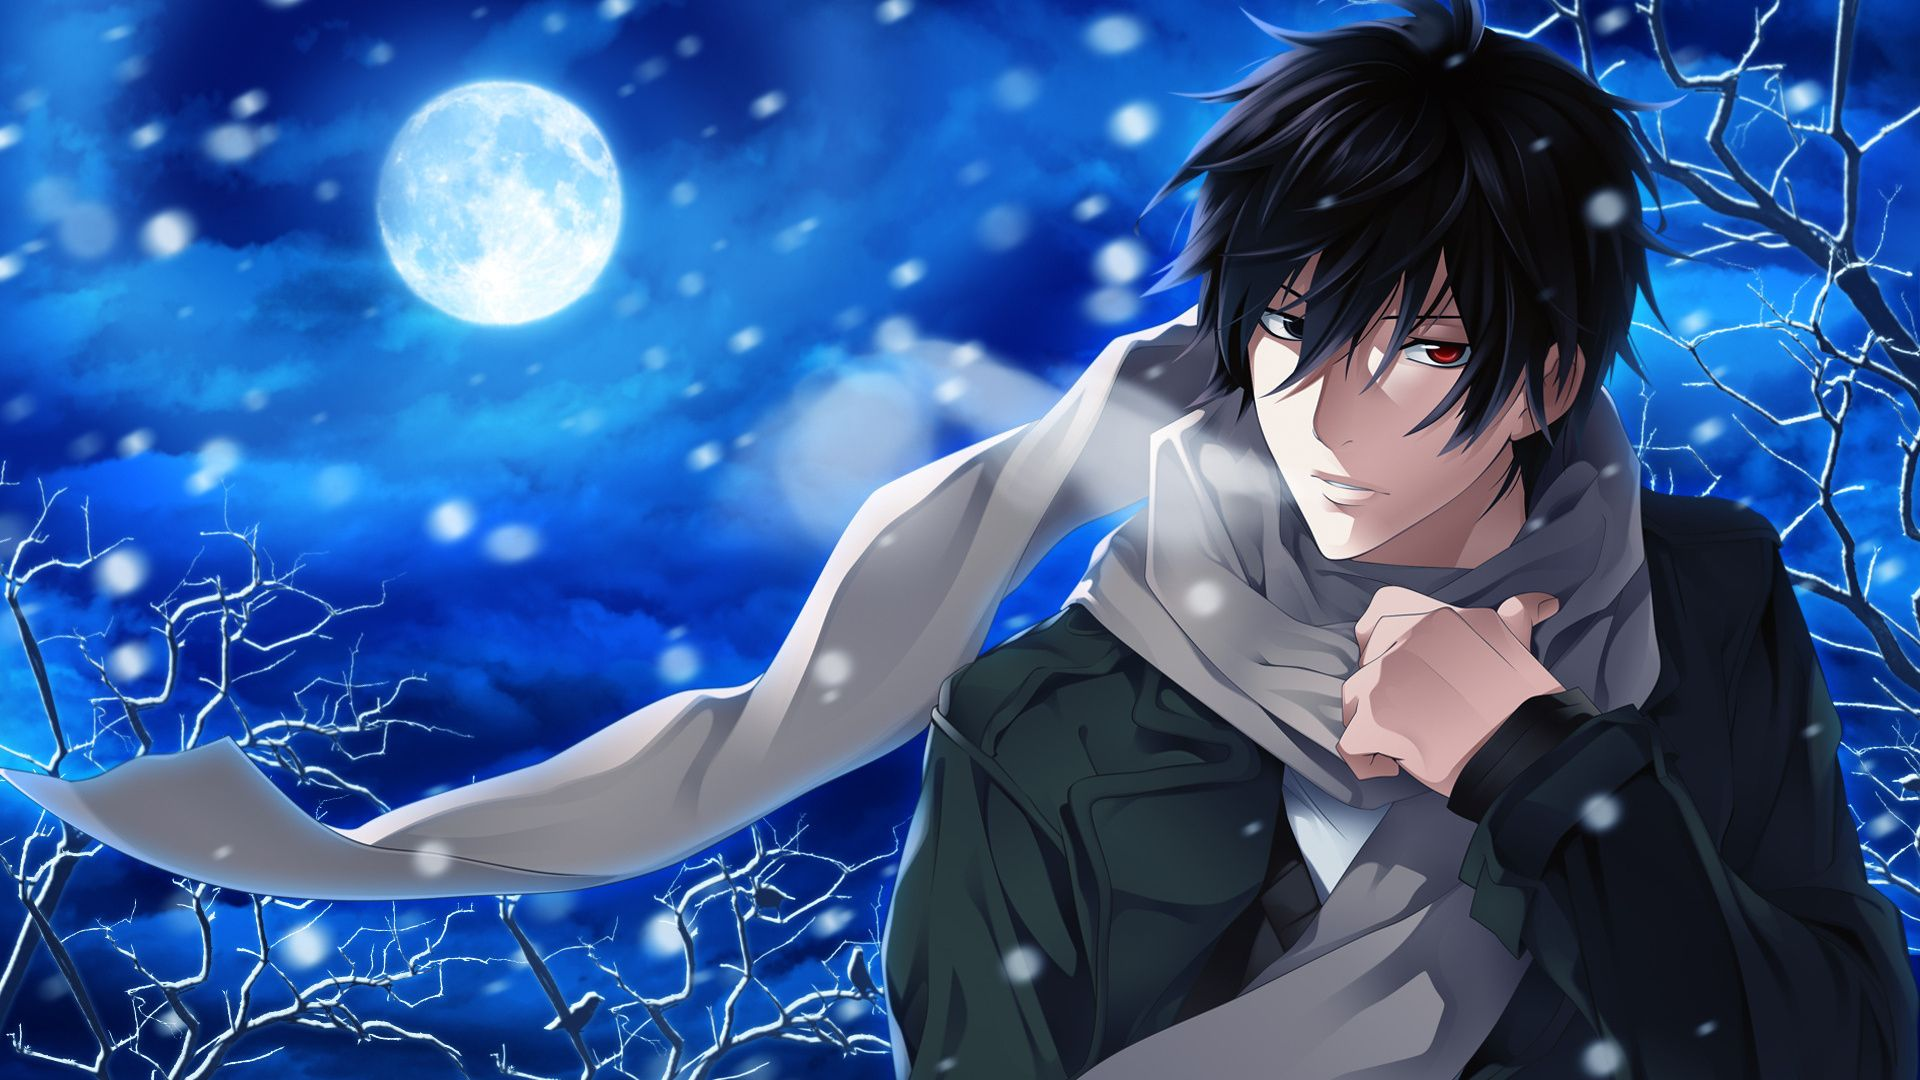 night, guy, the moon, snow, scarf, psychic detective